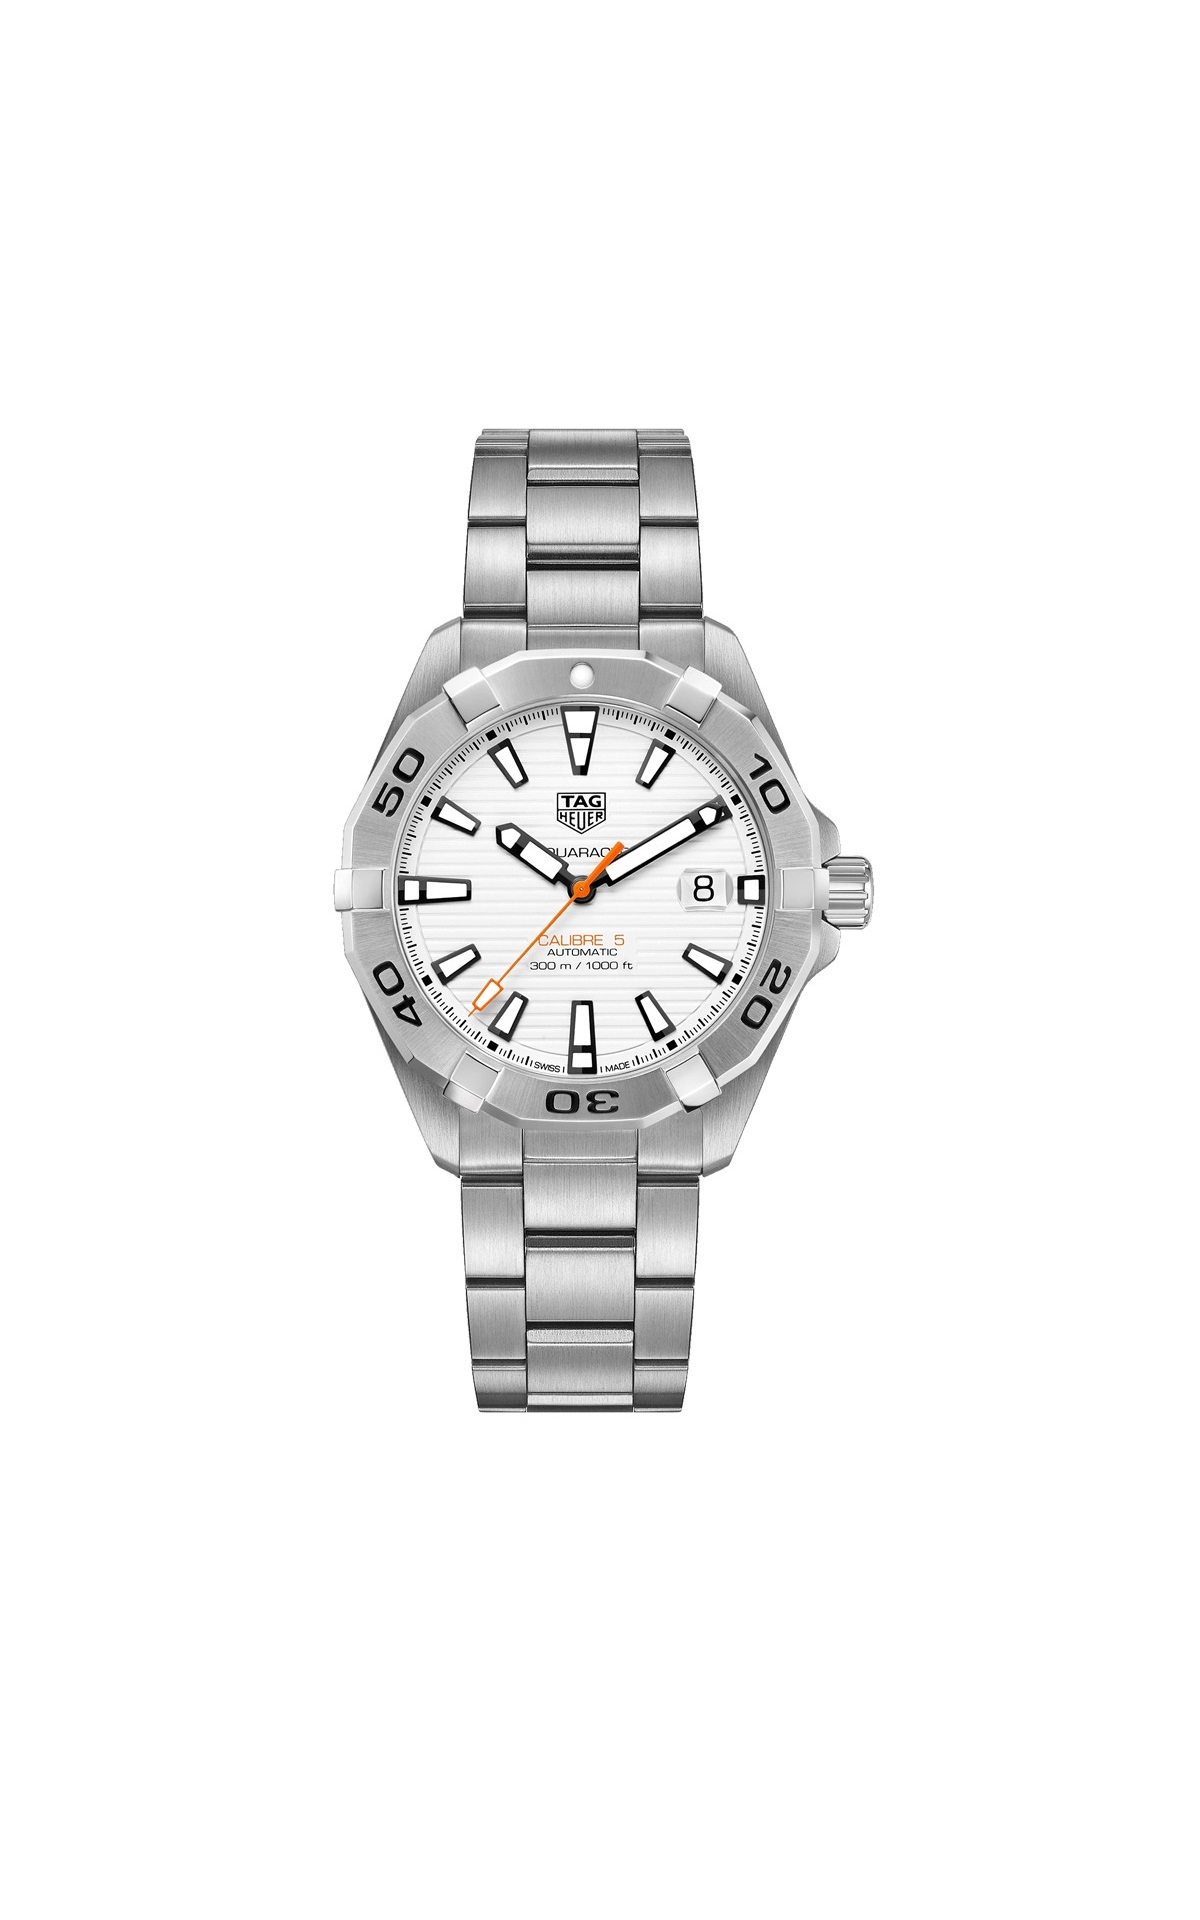 AQUARACER 41mm AUTOMATIC MOVEMENT, CALIBER 5 WHITE DIAL